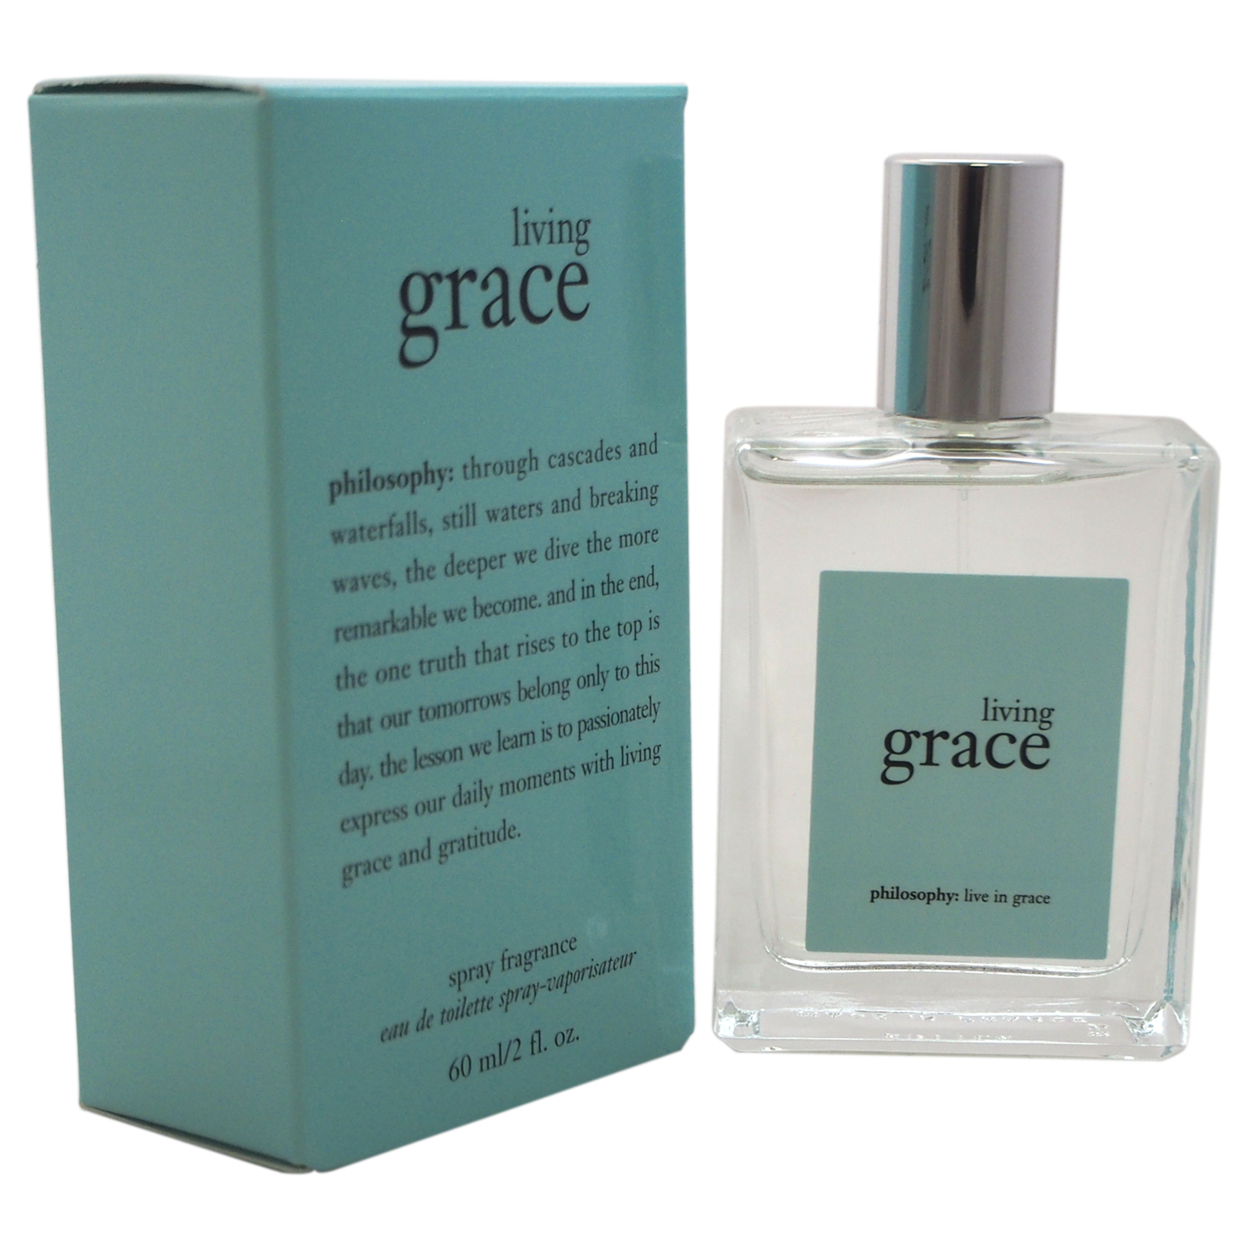 Living Grace by Philosophy for Women - 2 oz EDT Spray 583c6a37e2246159f30301c1